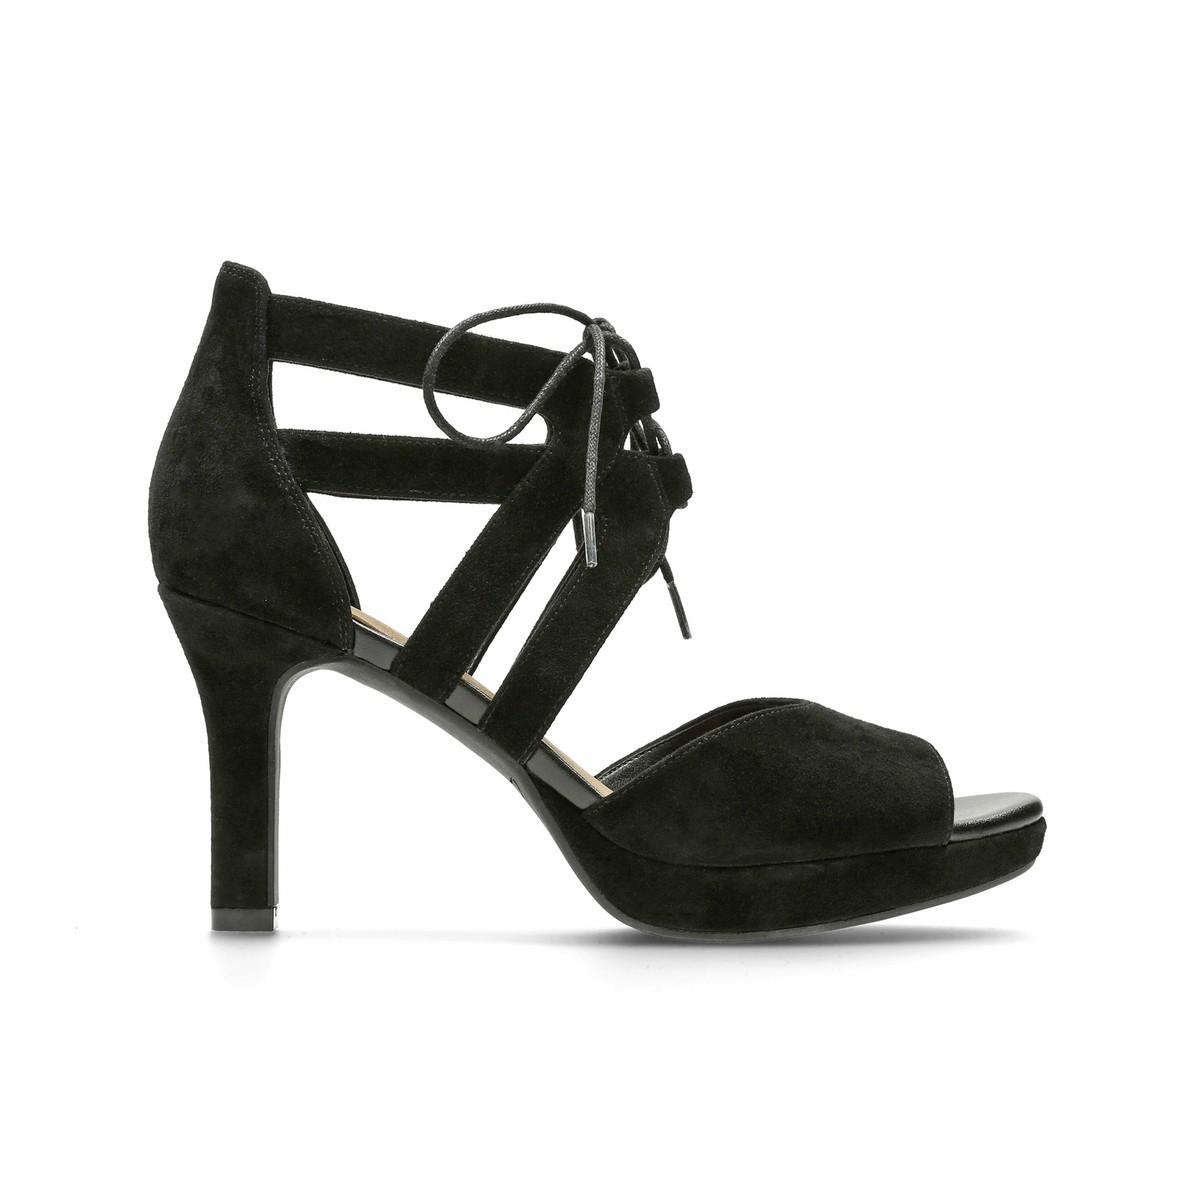 Lyst Clarks Mayra Ellie Suede Leather Sandals In Black